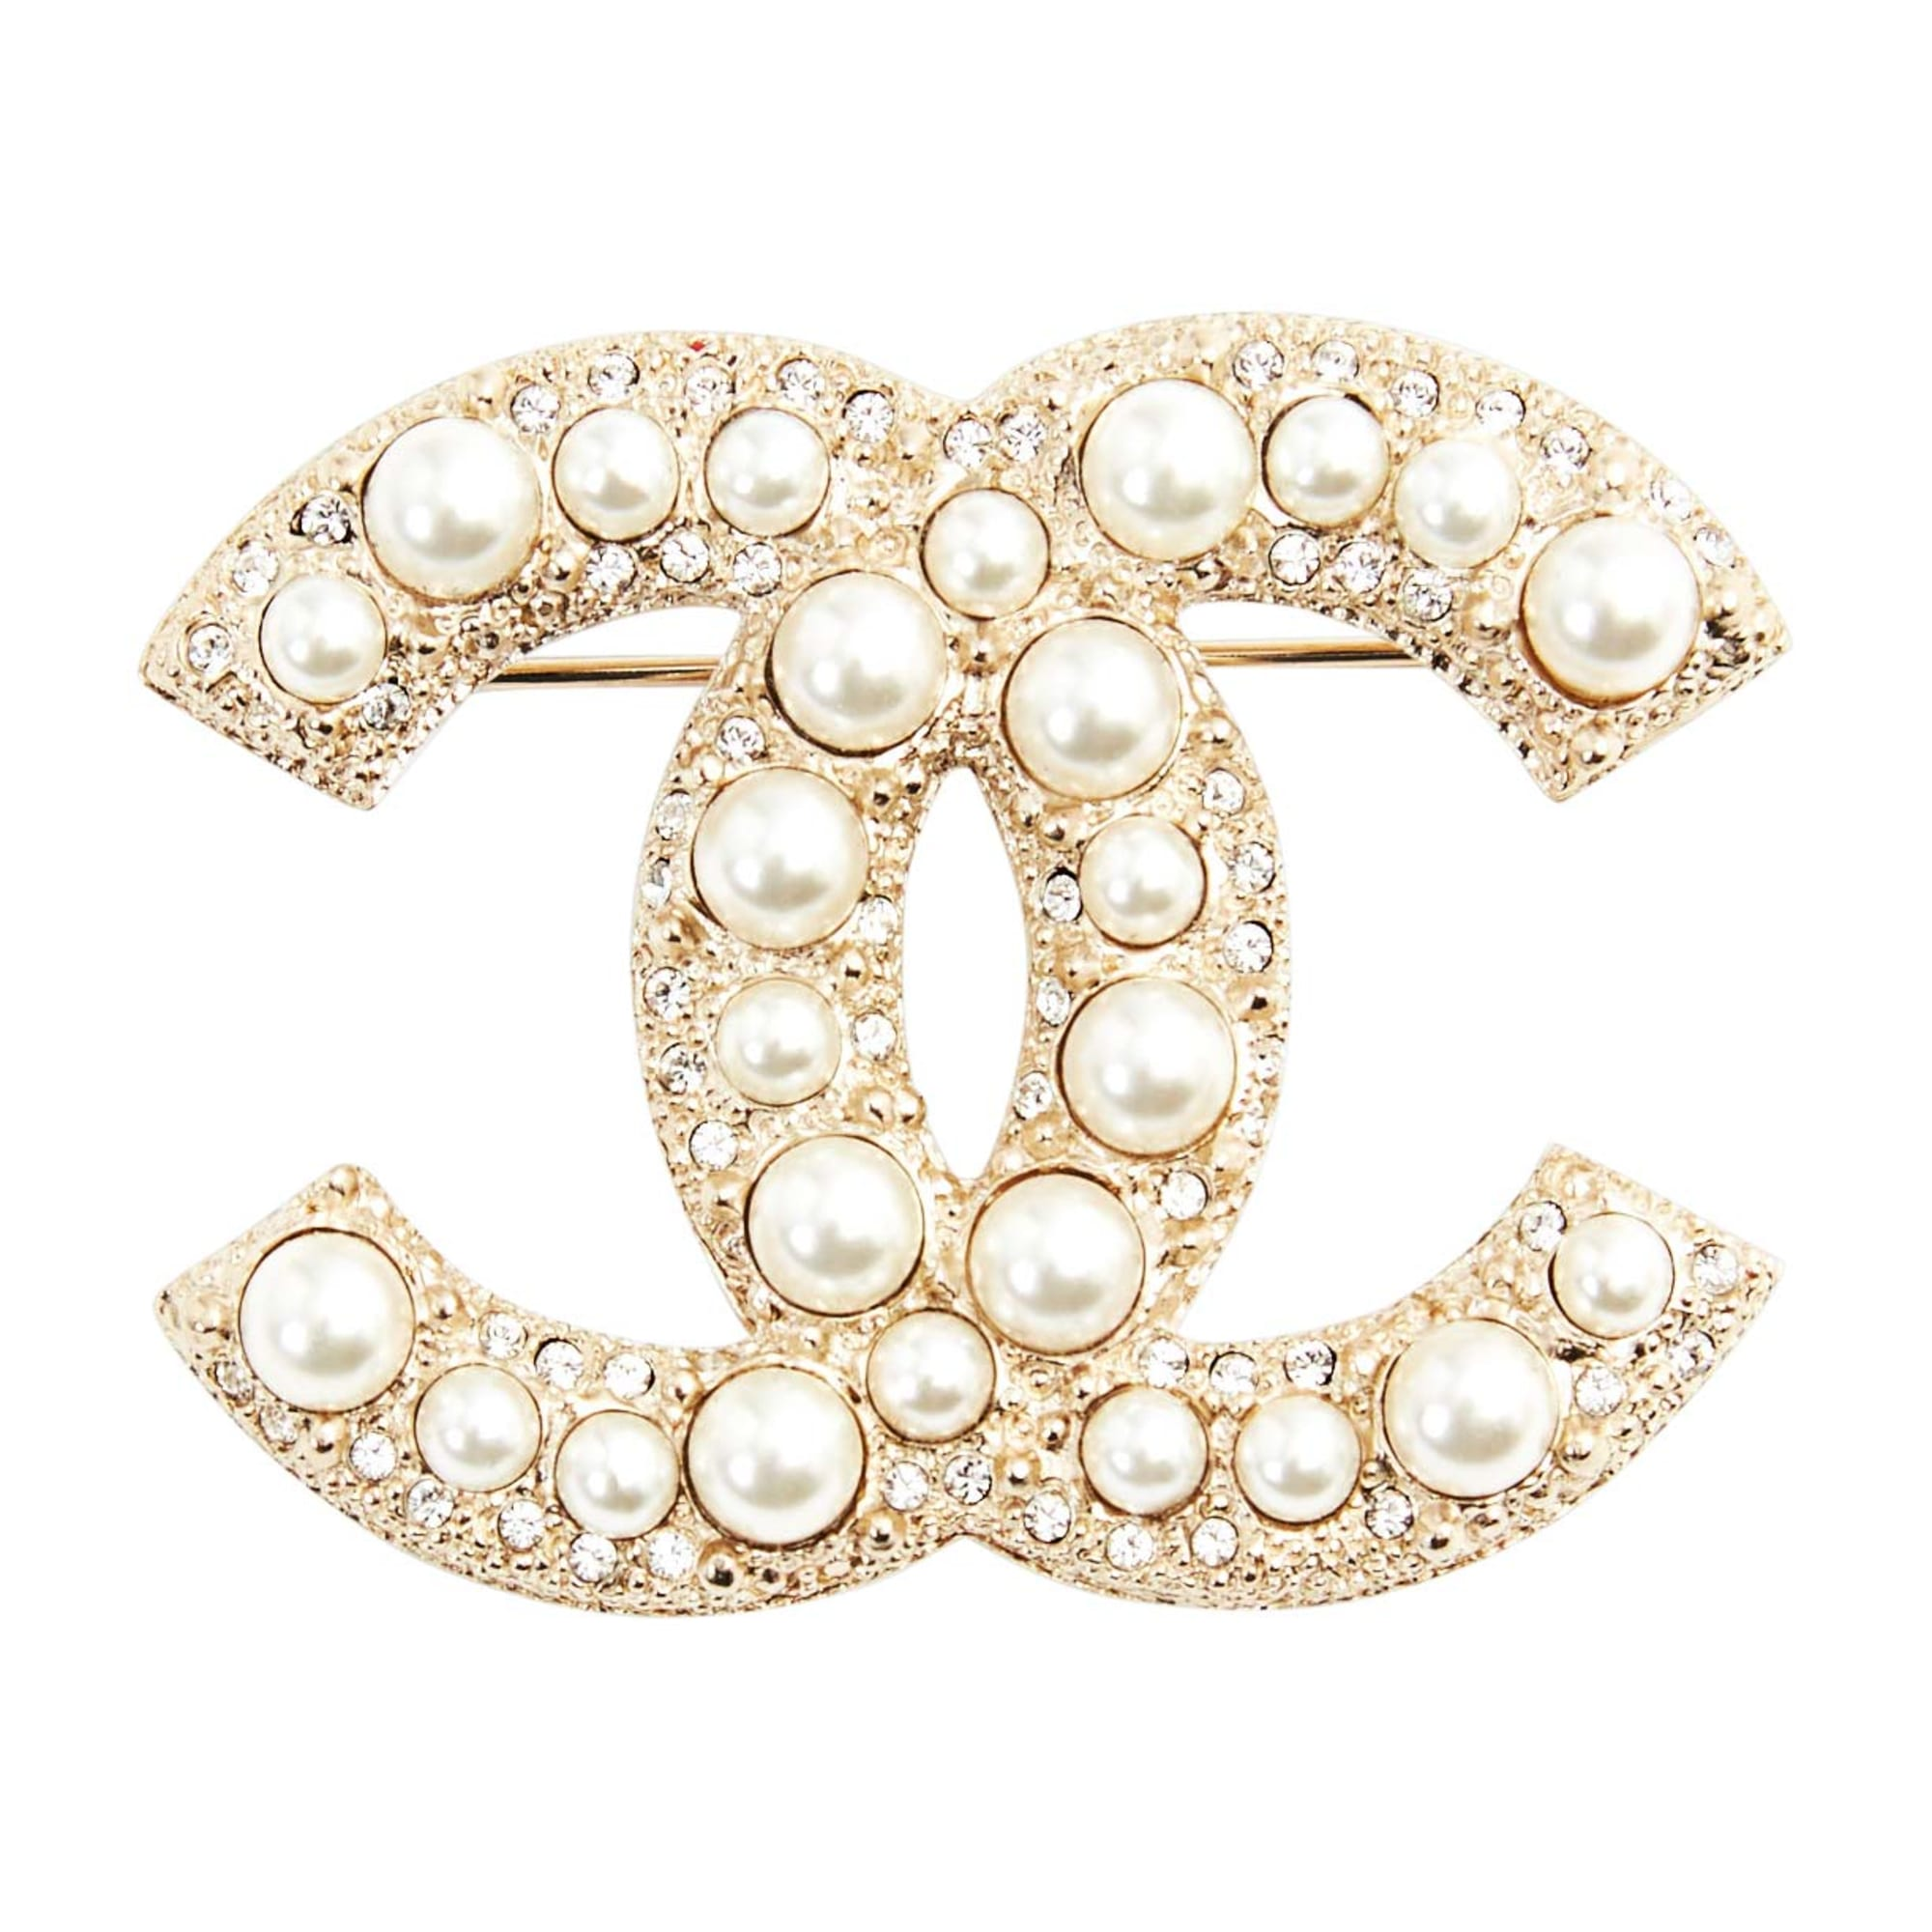 chanel ebay x cc s brand harrods brooch crystals pin new large silver itm